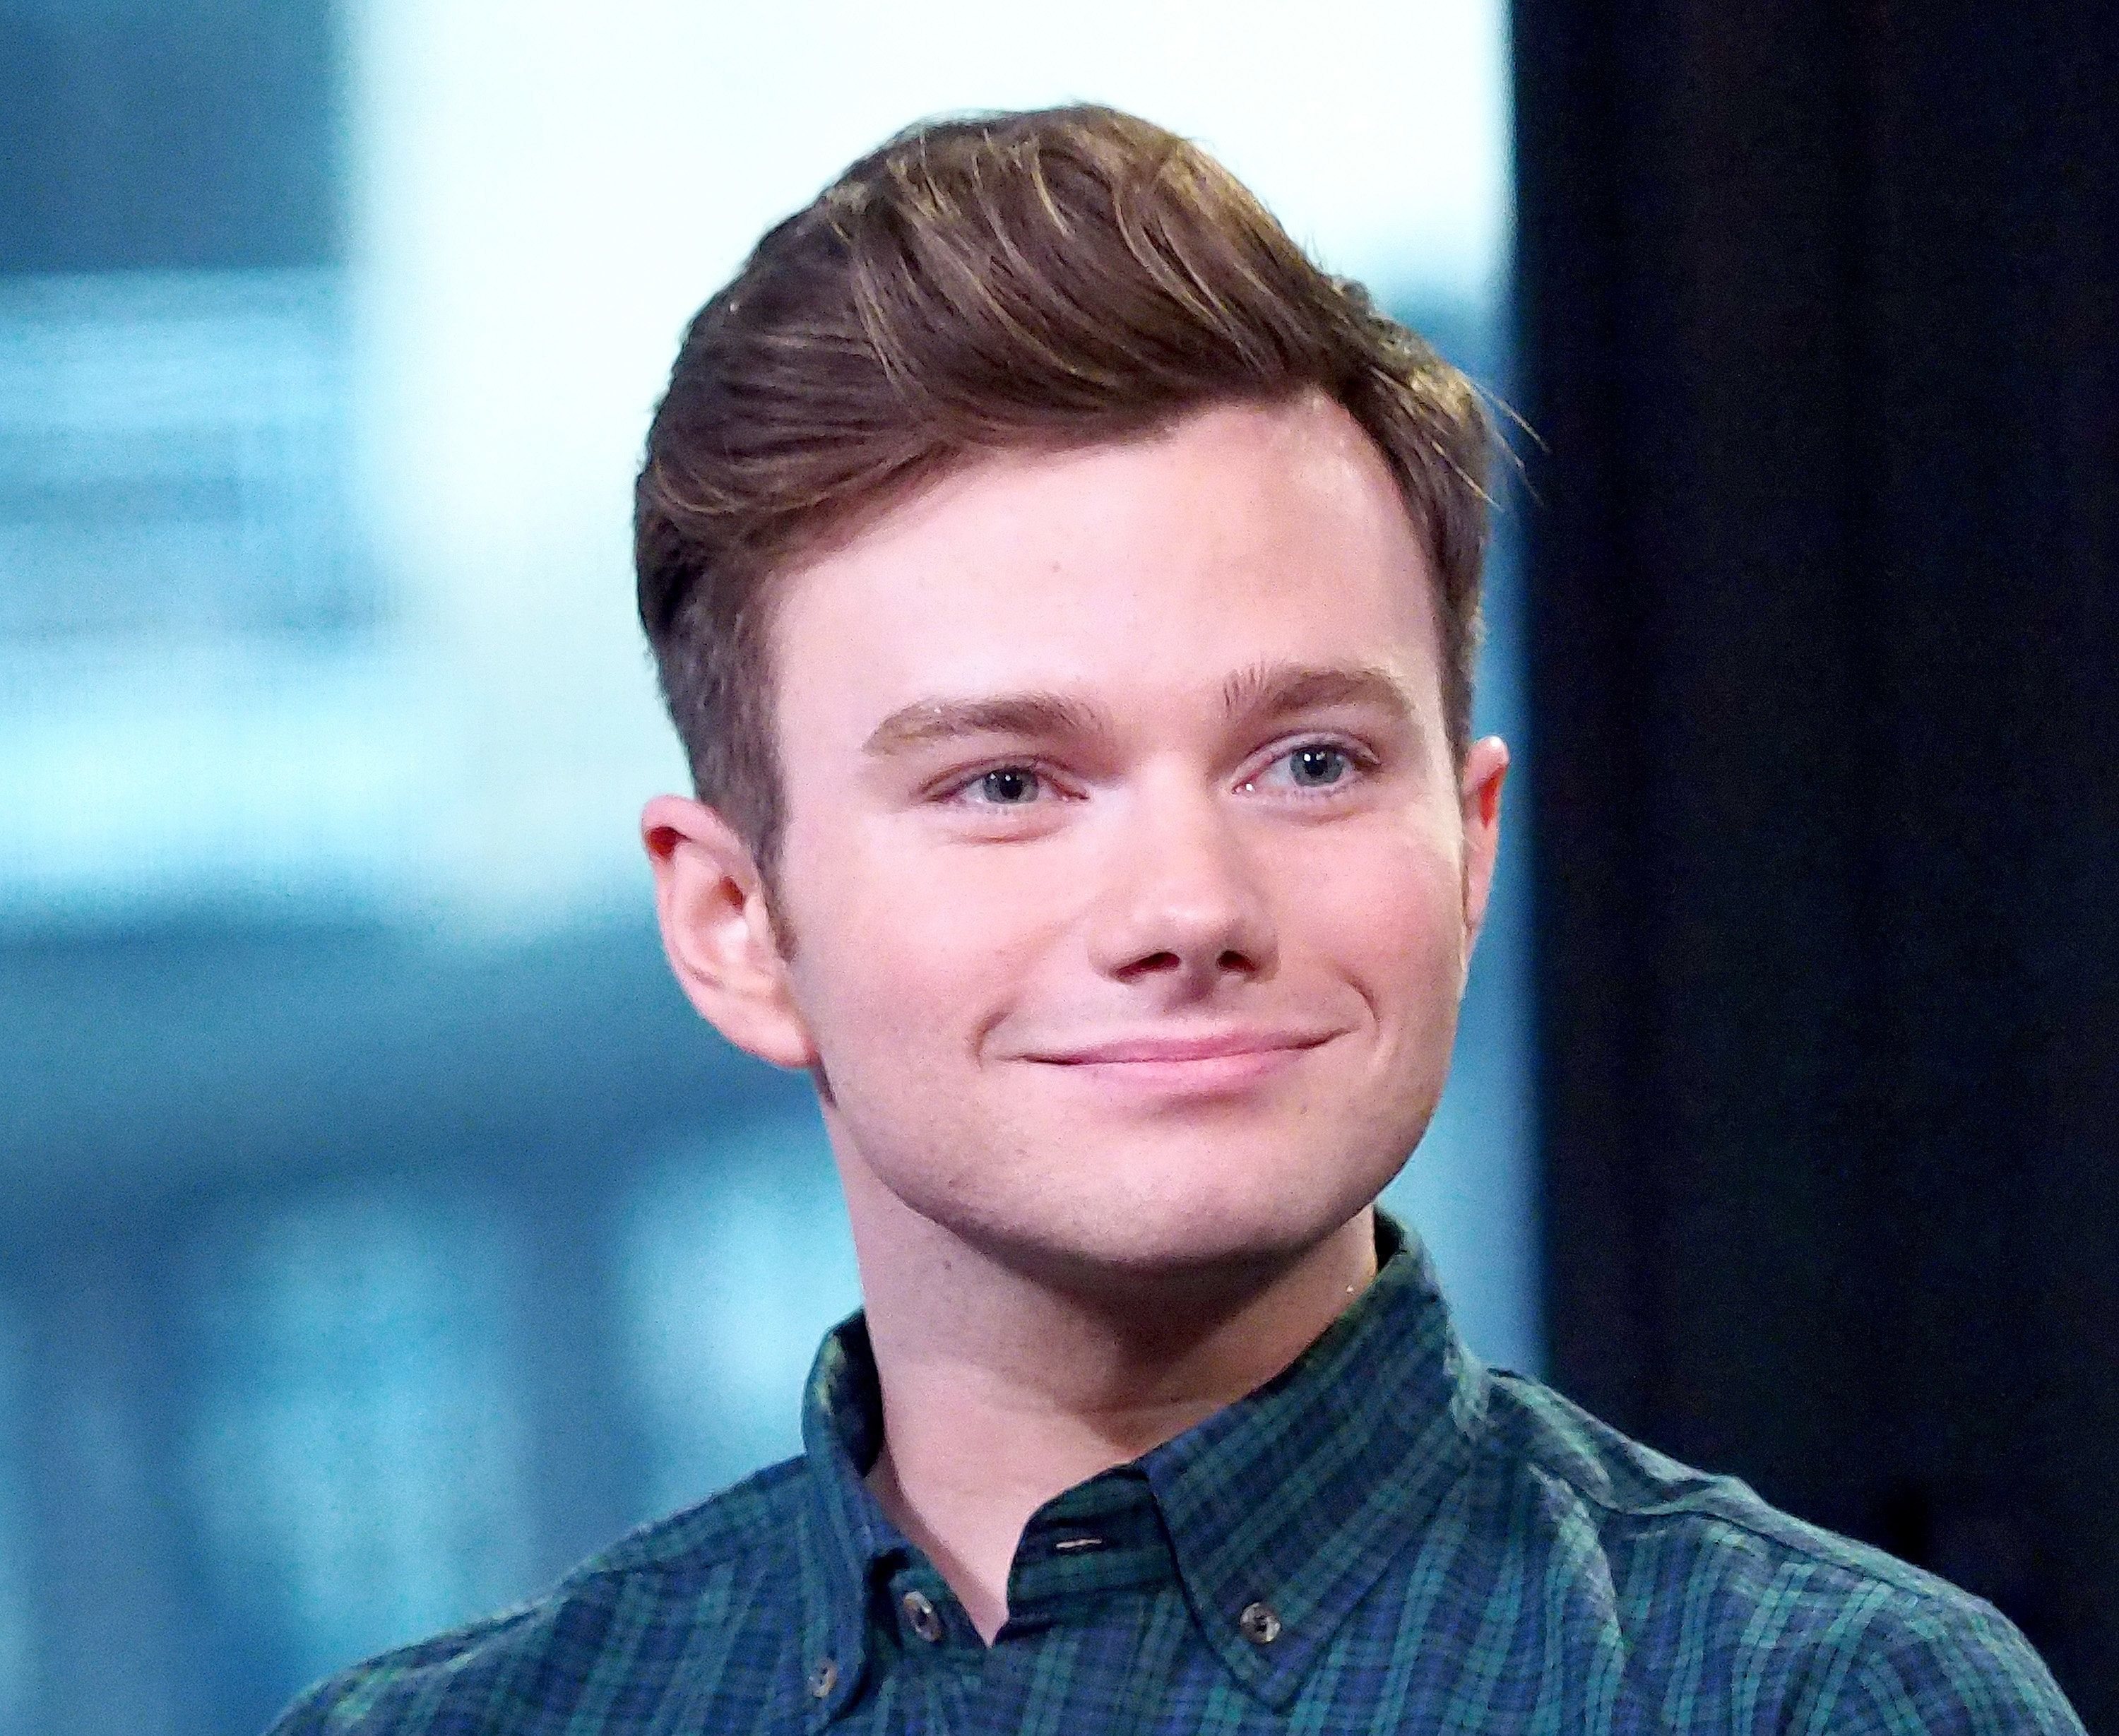 NEW YORK, NY - JULY 12:  Actor Chris Colfer attends AOL Build Speaker Series - Chris Colfer, 'The Land Of Stories: An Author's Odyssey'  at AOL HQ on July 12, 2016 in New York City.  (Photo by Paul Zimmerman/WireImage)